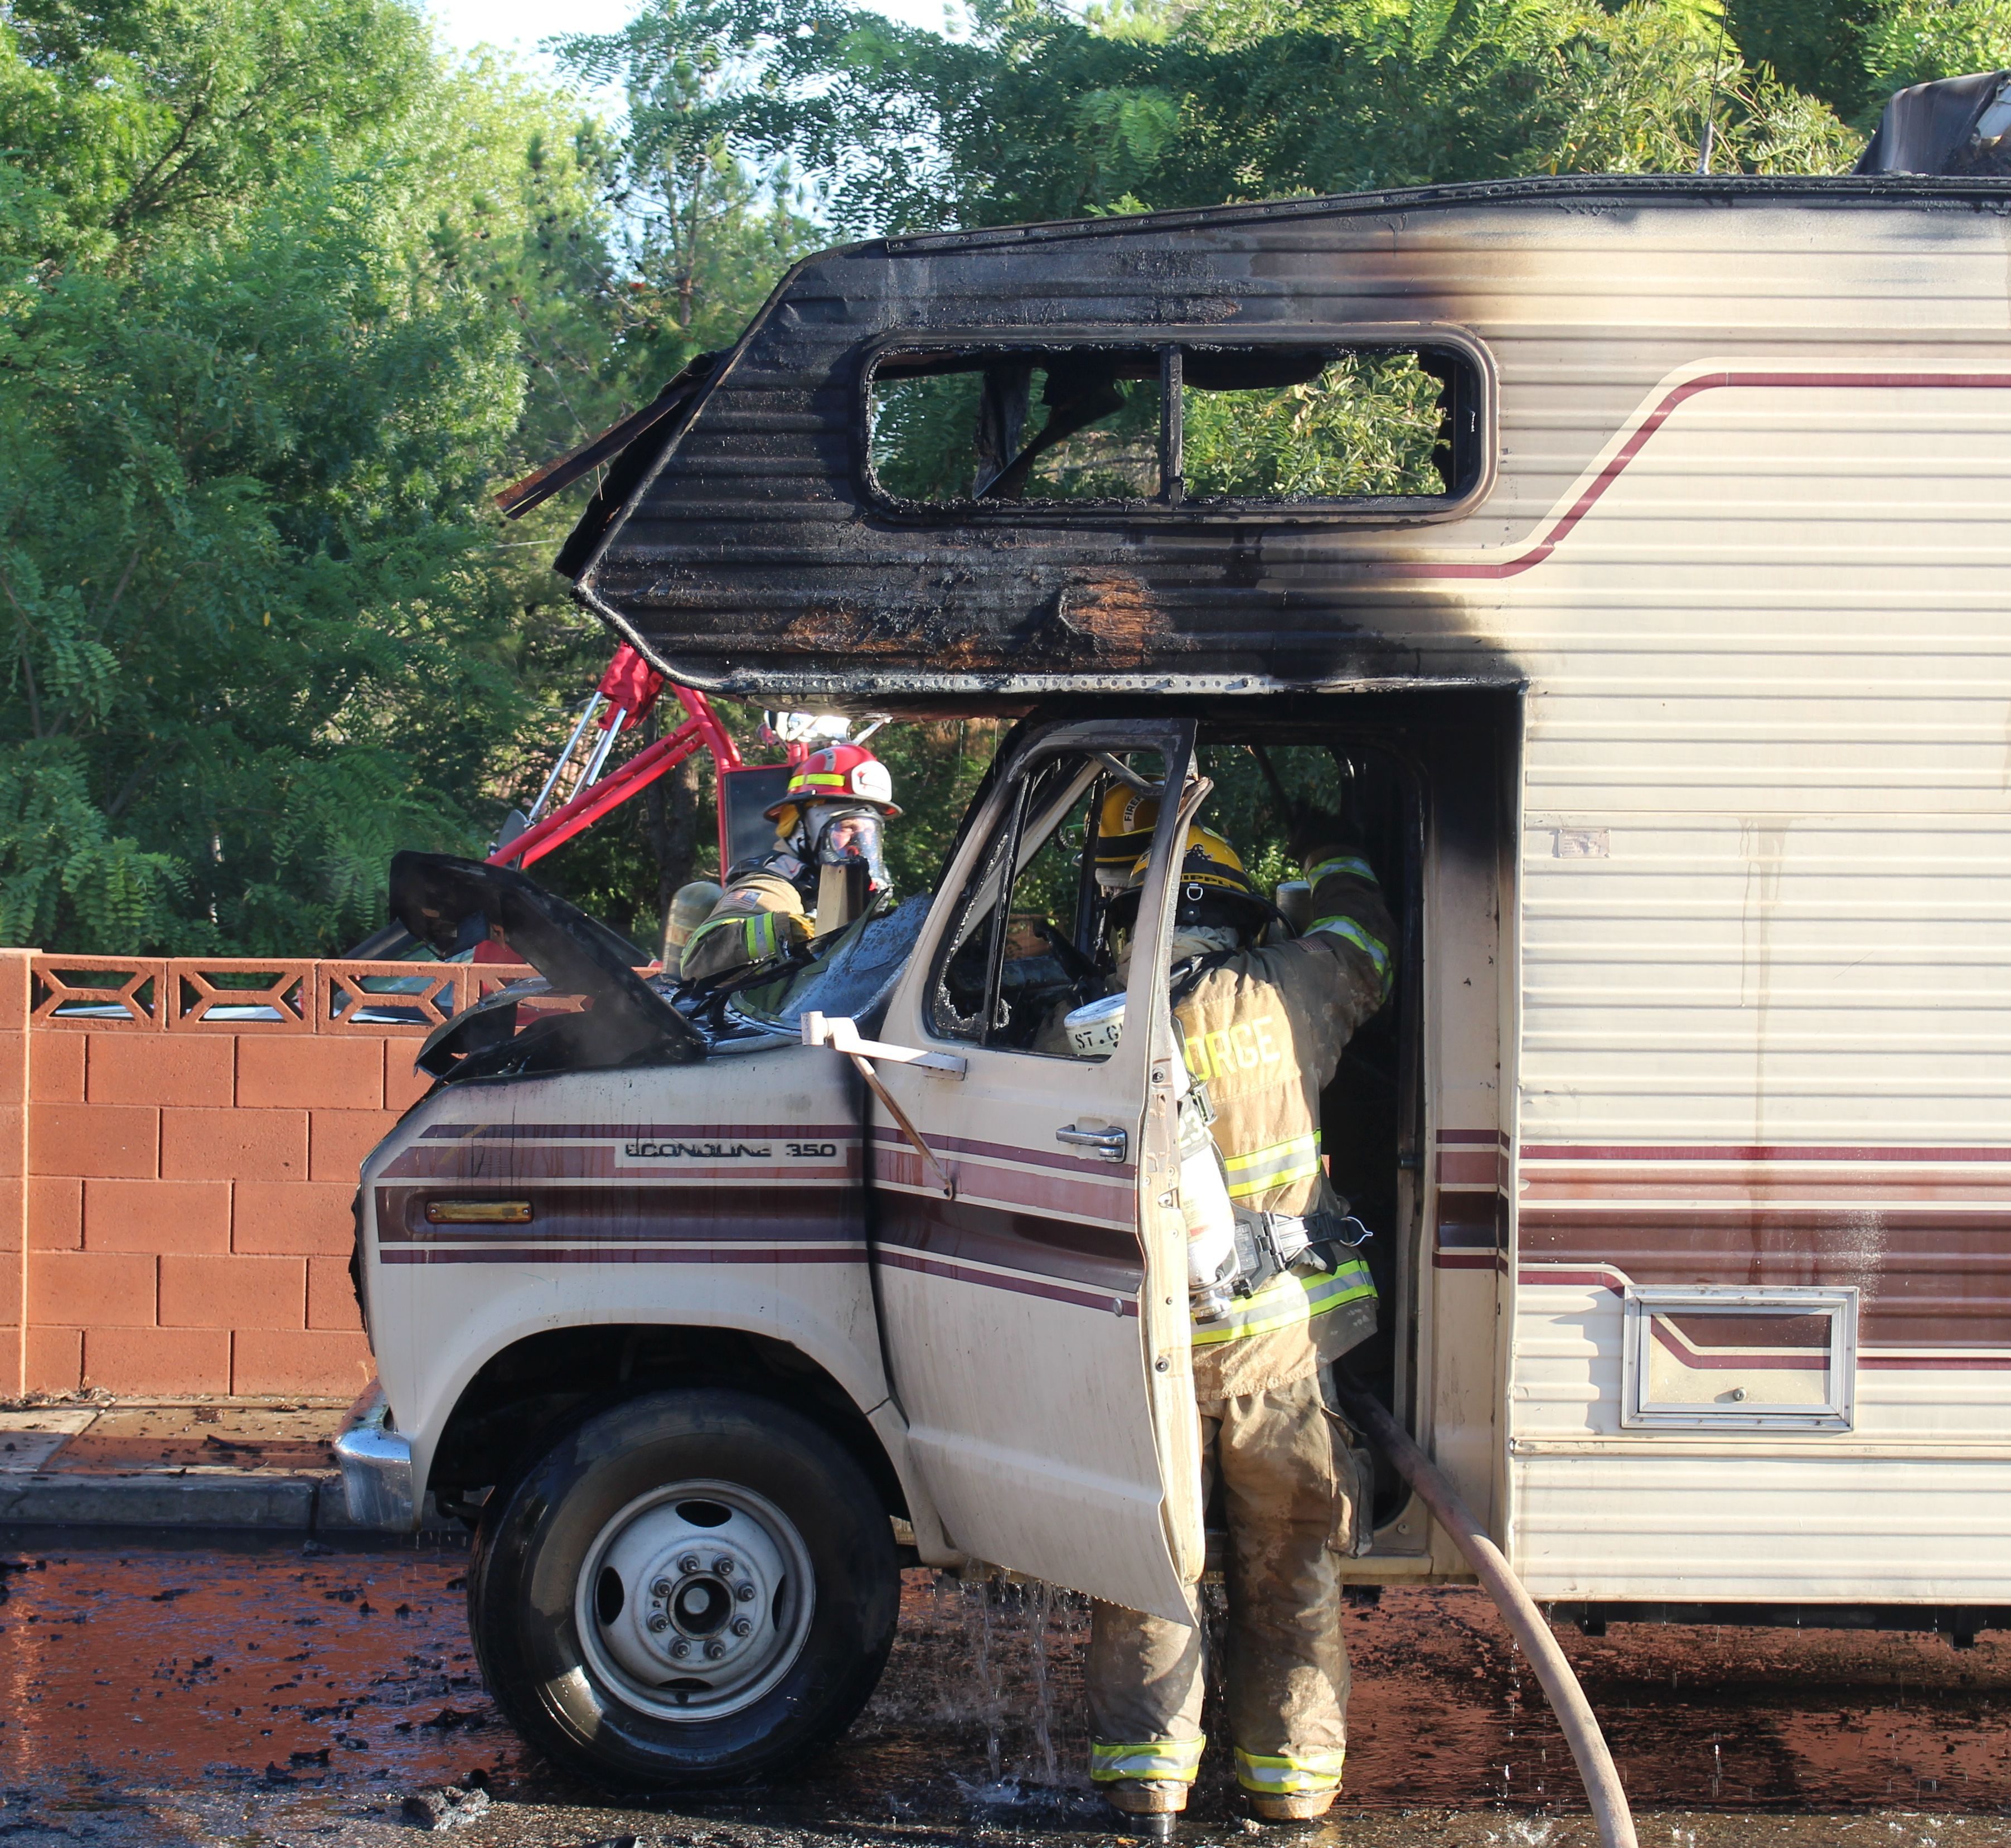 A motor home was destroyed Tuesday evening when it caught of fire in a St. George neighborhood. St. George, Utah, Aug. 2, 2016 | Photo by Ric Wayman, St. George News